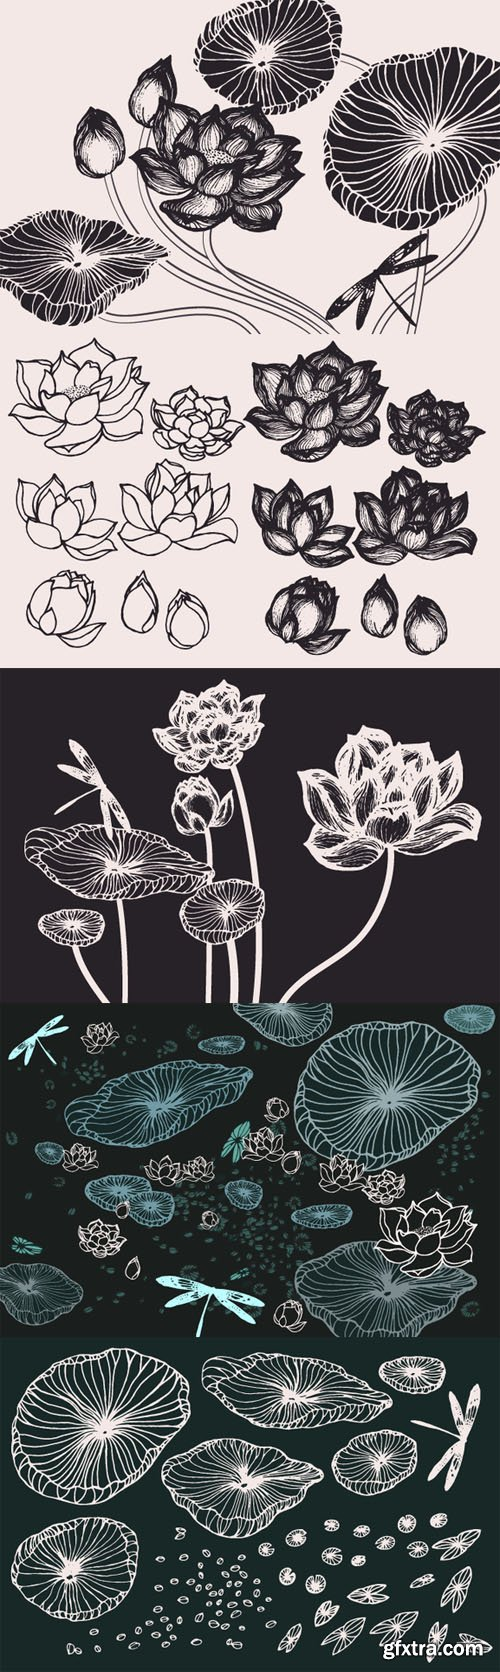 Lotus Flowers & Leaves Drawings - CM 131007